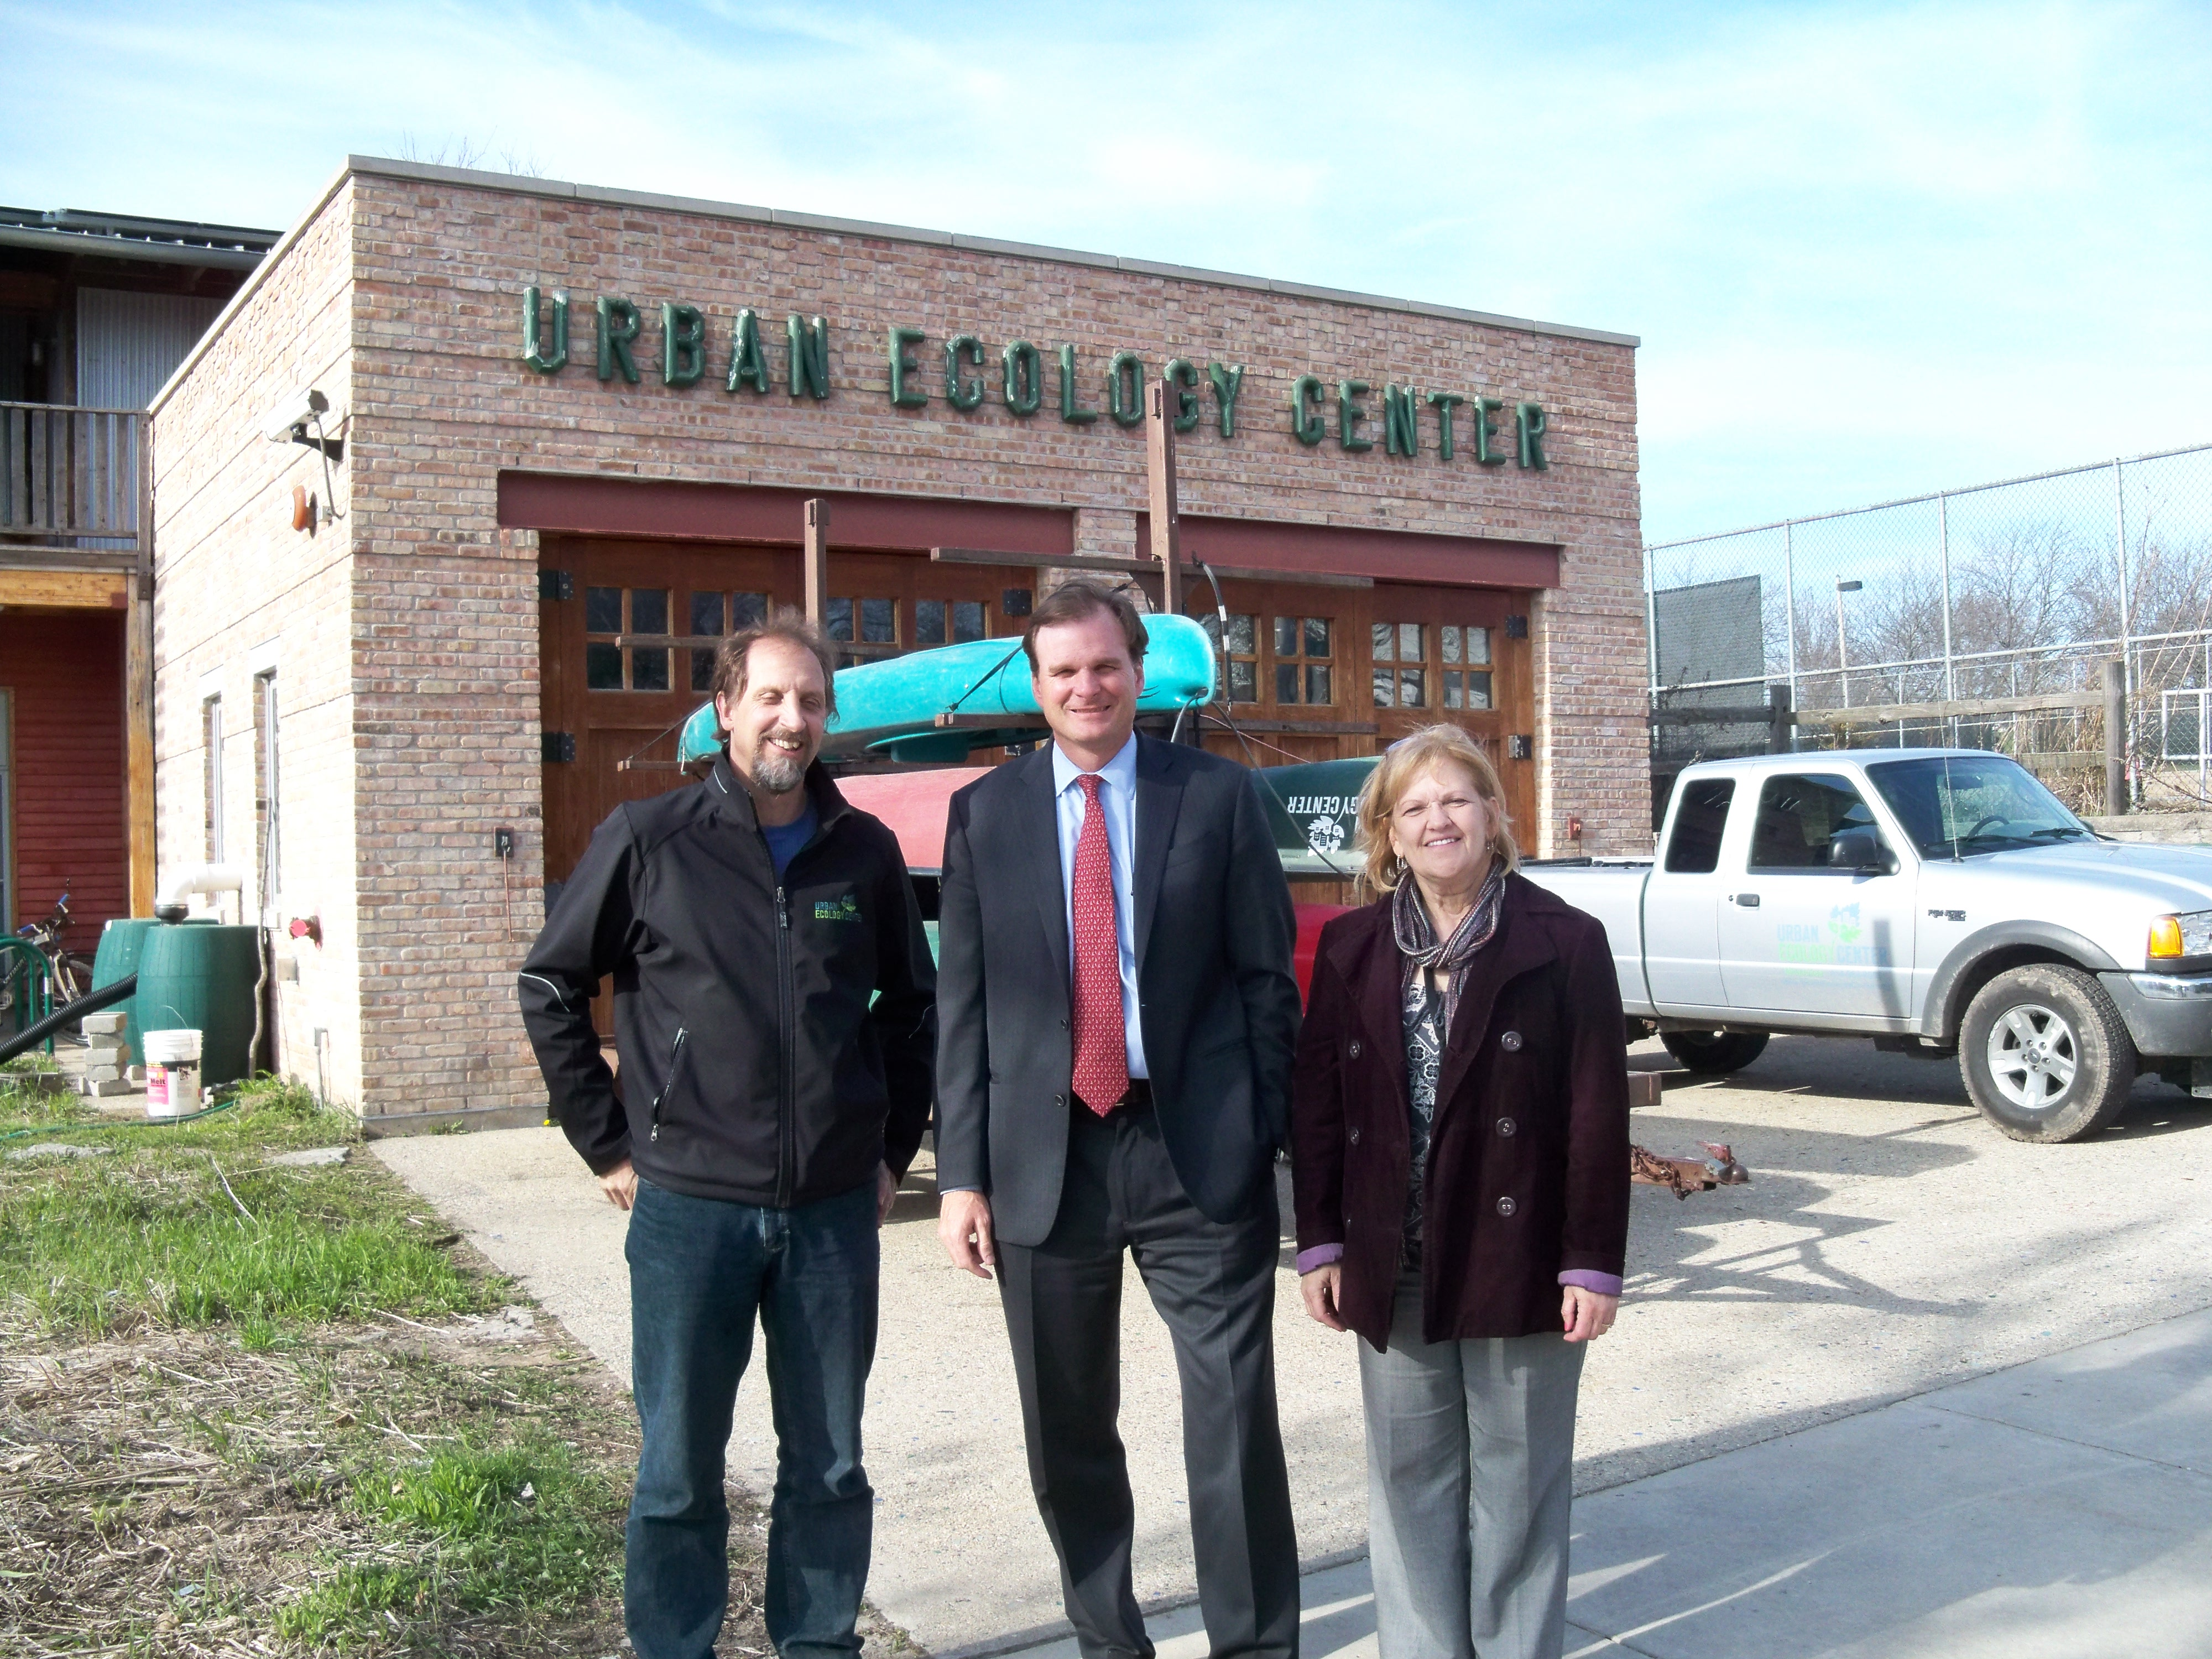 USDA Under Secretary Bonnie visits Urban Ecology Center